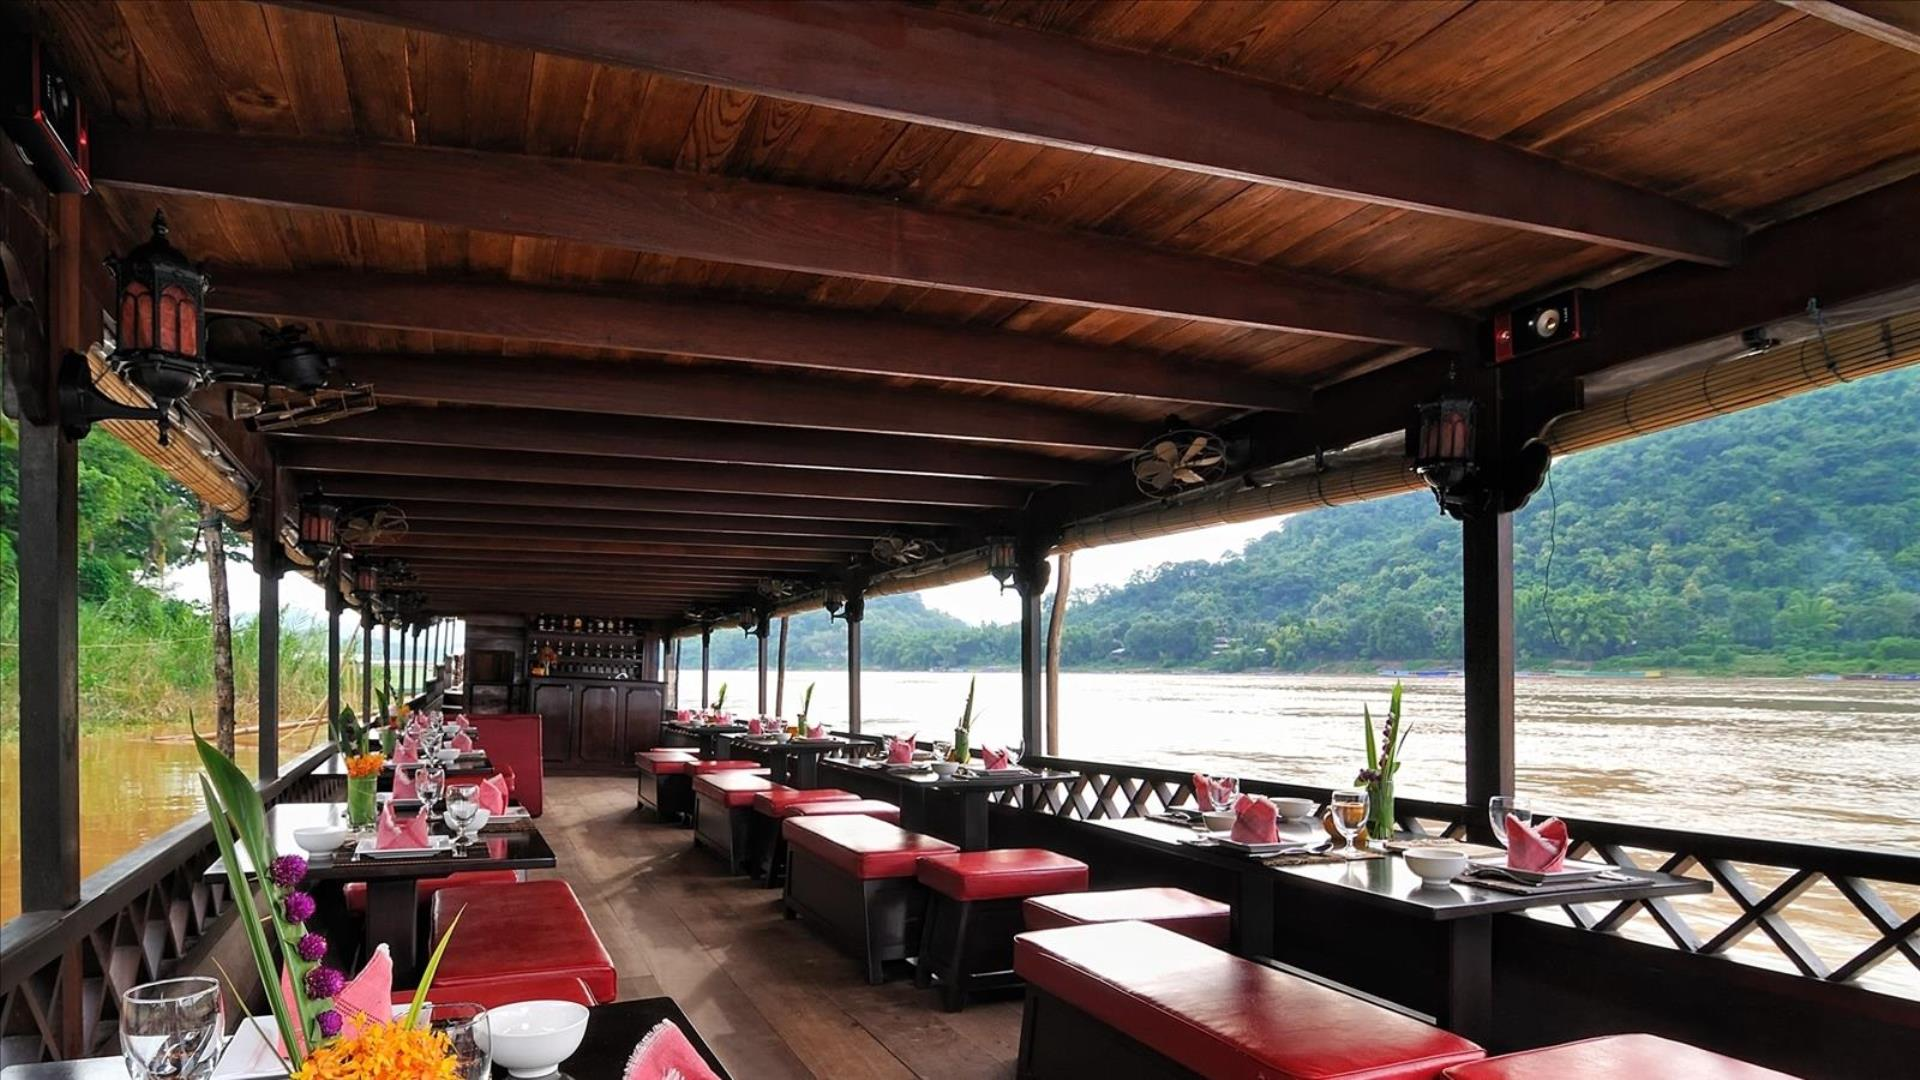 Laos, Luang Prabang : Half Day Mekong Sunset Cruise - Half-Day | Sunset Cruise in Luang Prabang